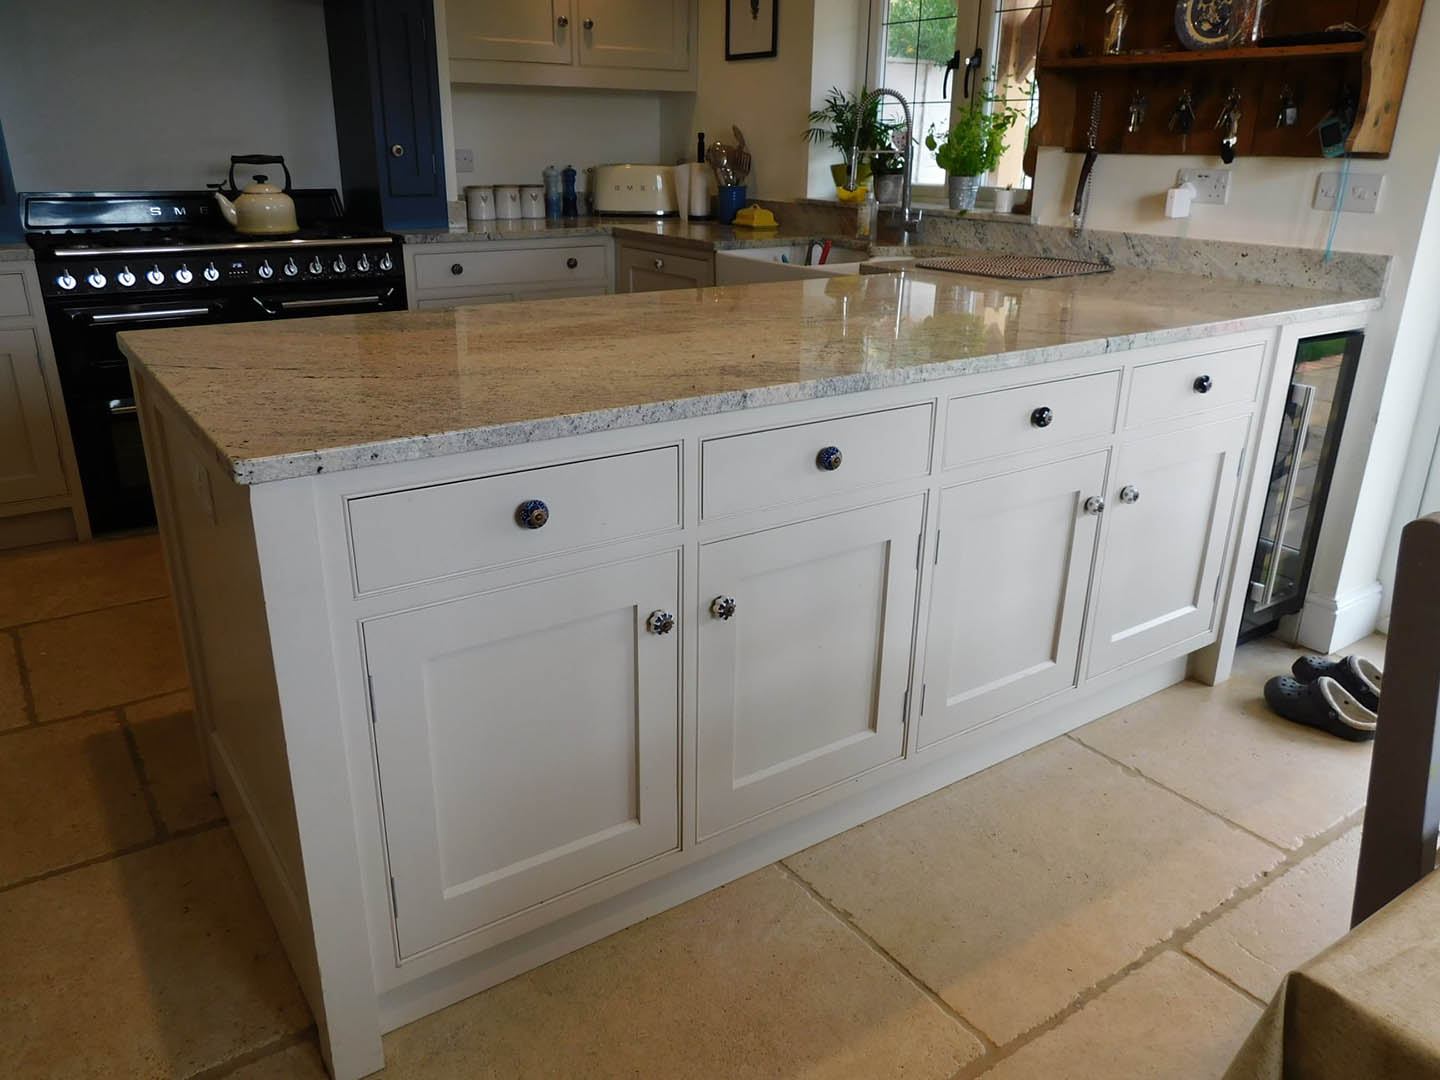 A row of kitchen cupboards